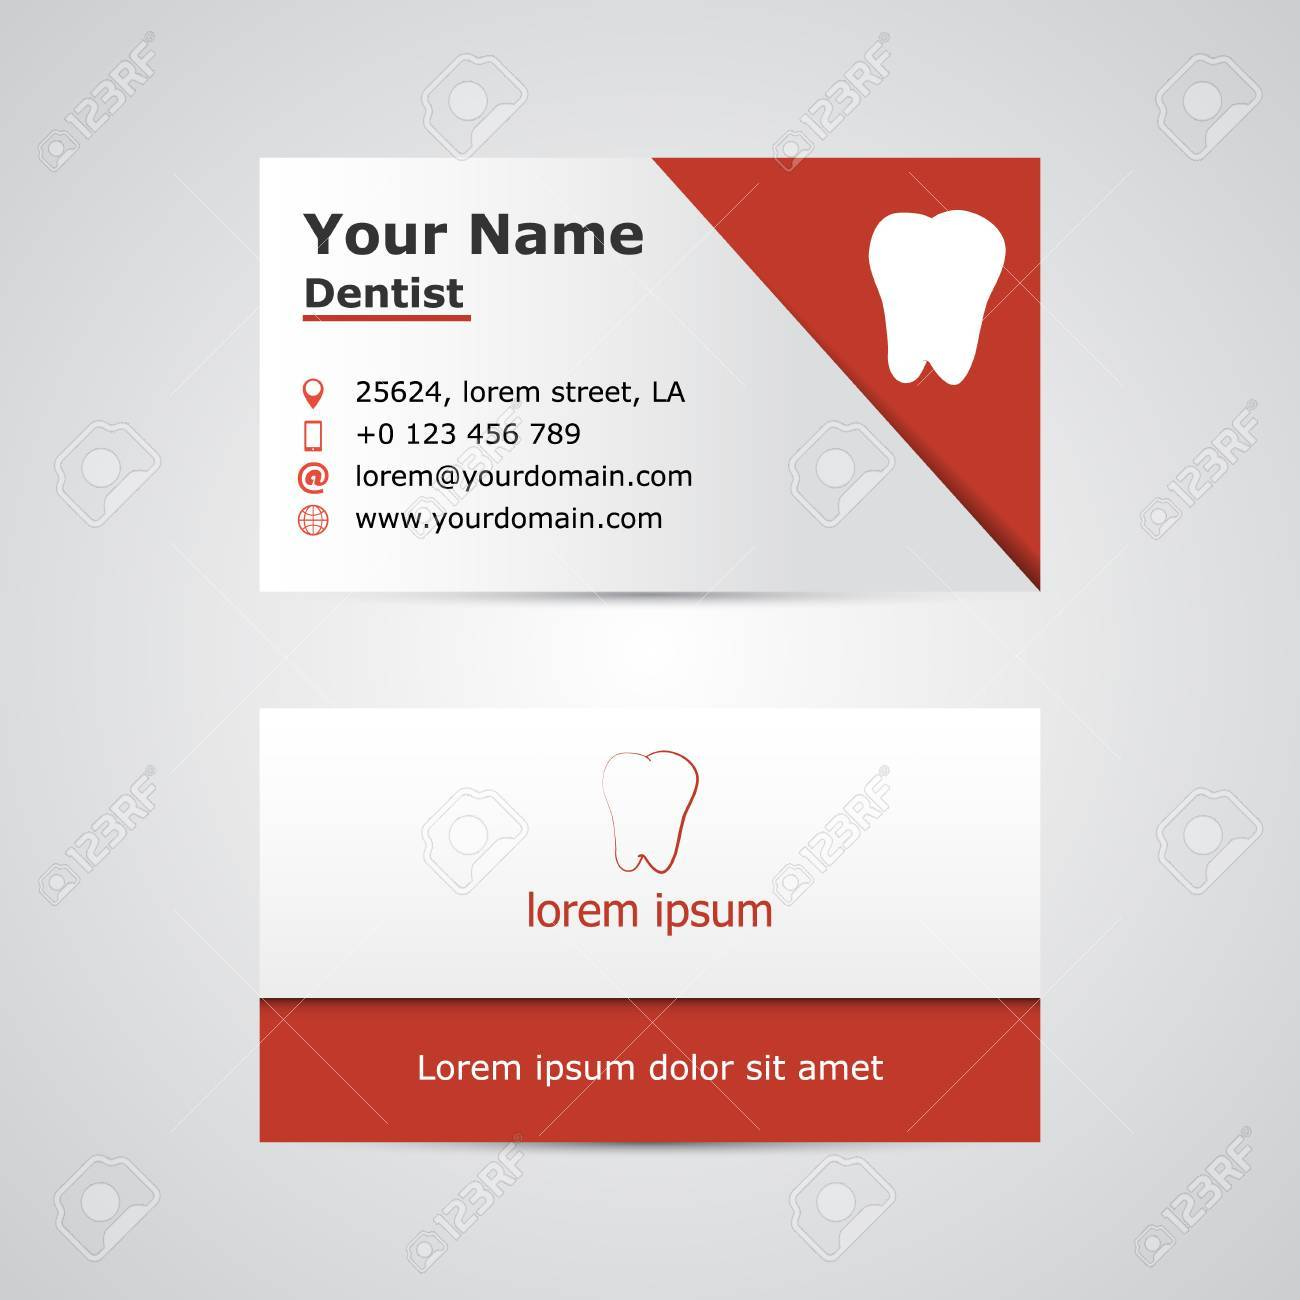 Dental business card template vector illustration royalty free dental business card template vector illustration stock vector 66269590 flashek